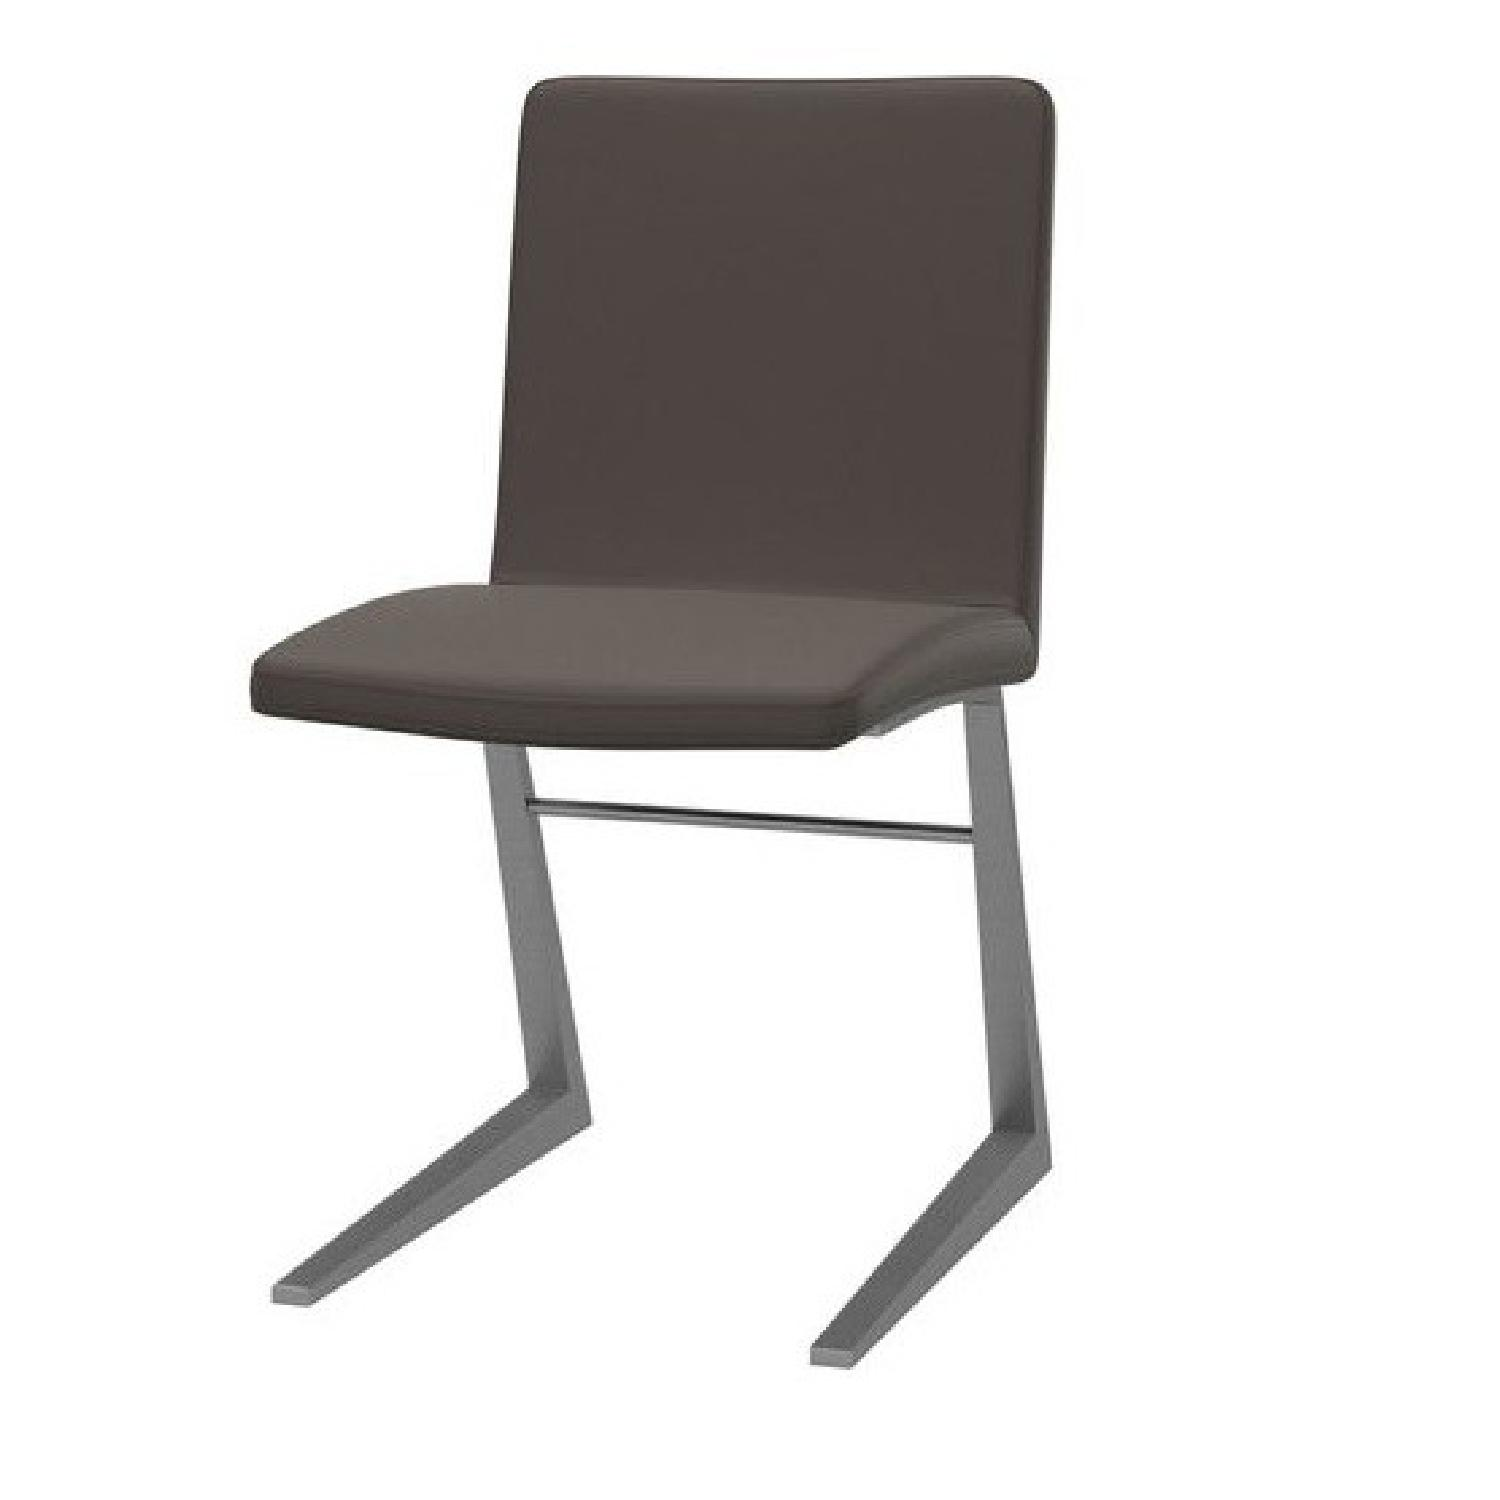 BoConcept Mariposa Grey Leather Dining Chairs